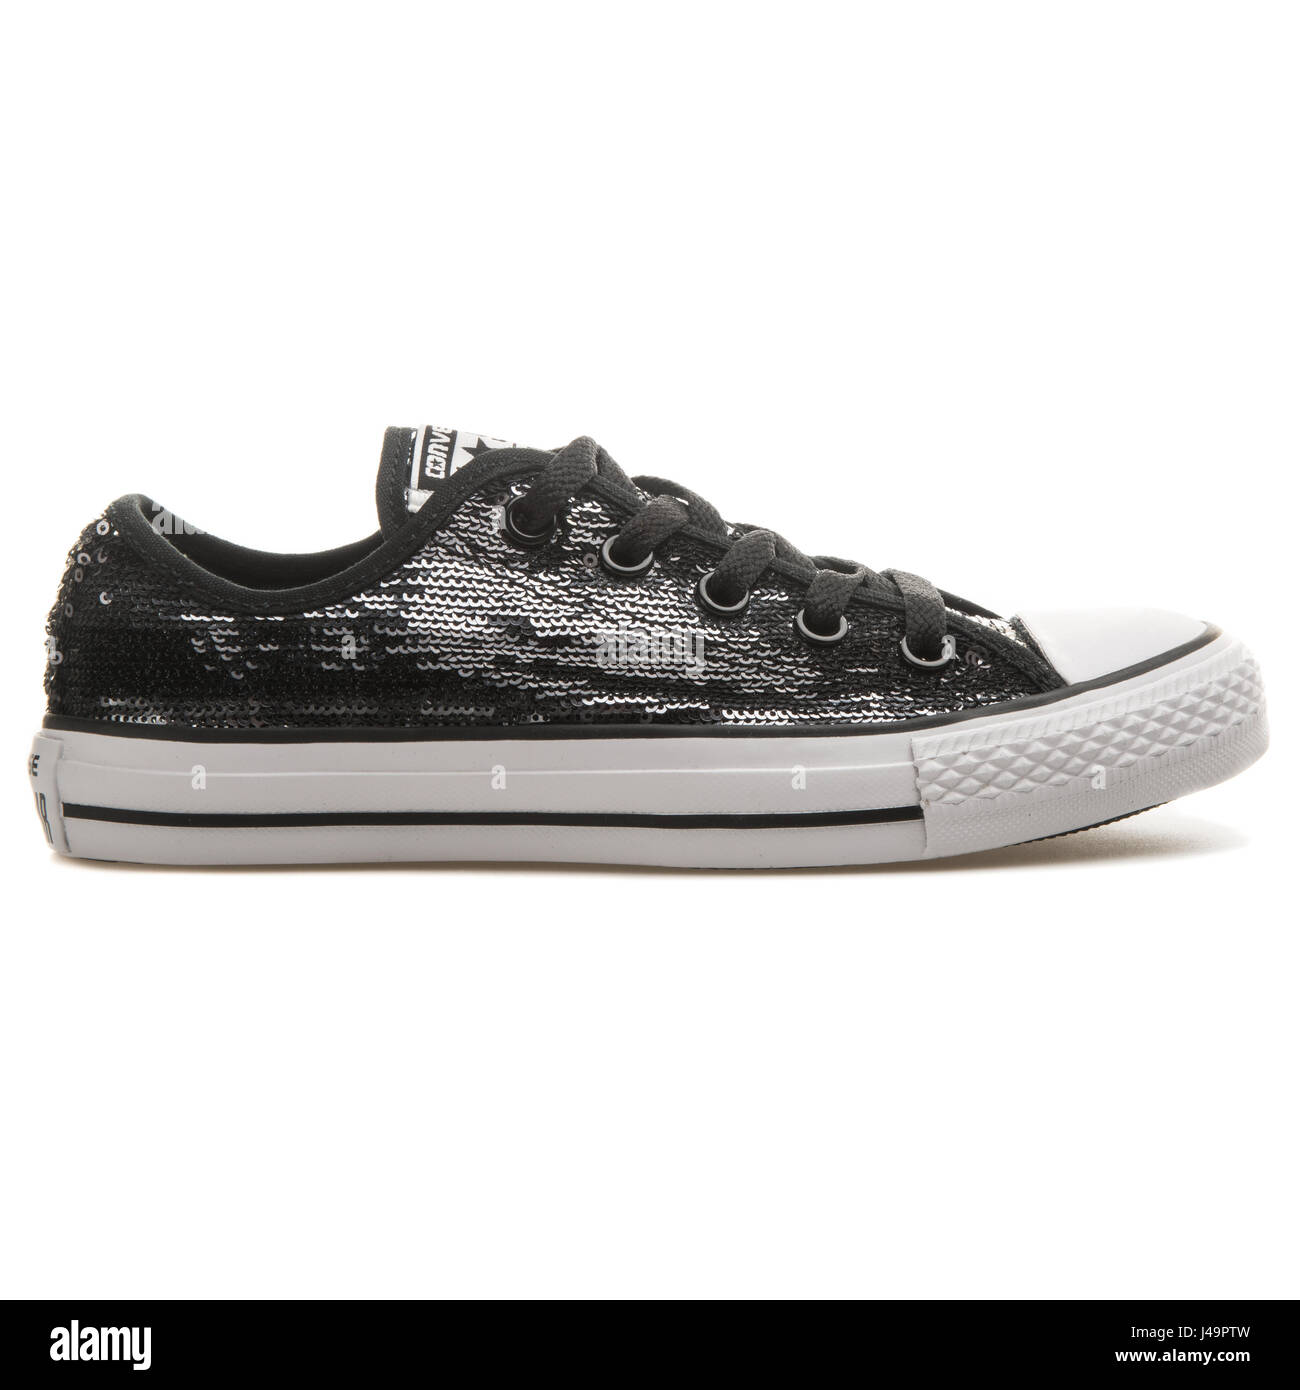 Difettoso Moschea efficacia  Converse Chuck Taylor All Star CT Sequin OX Black - 549665C Stock Photo -  Alamy